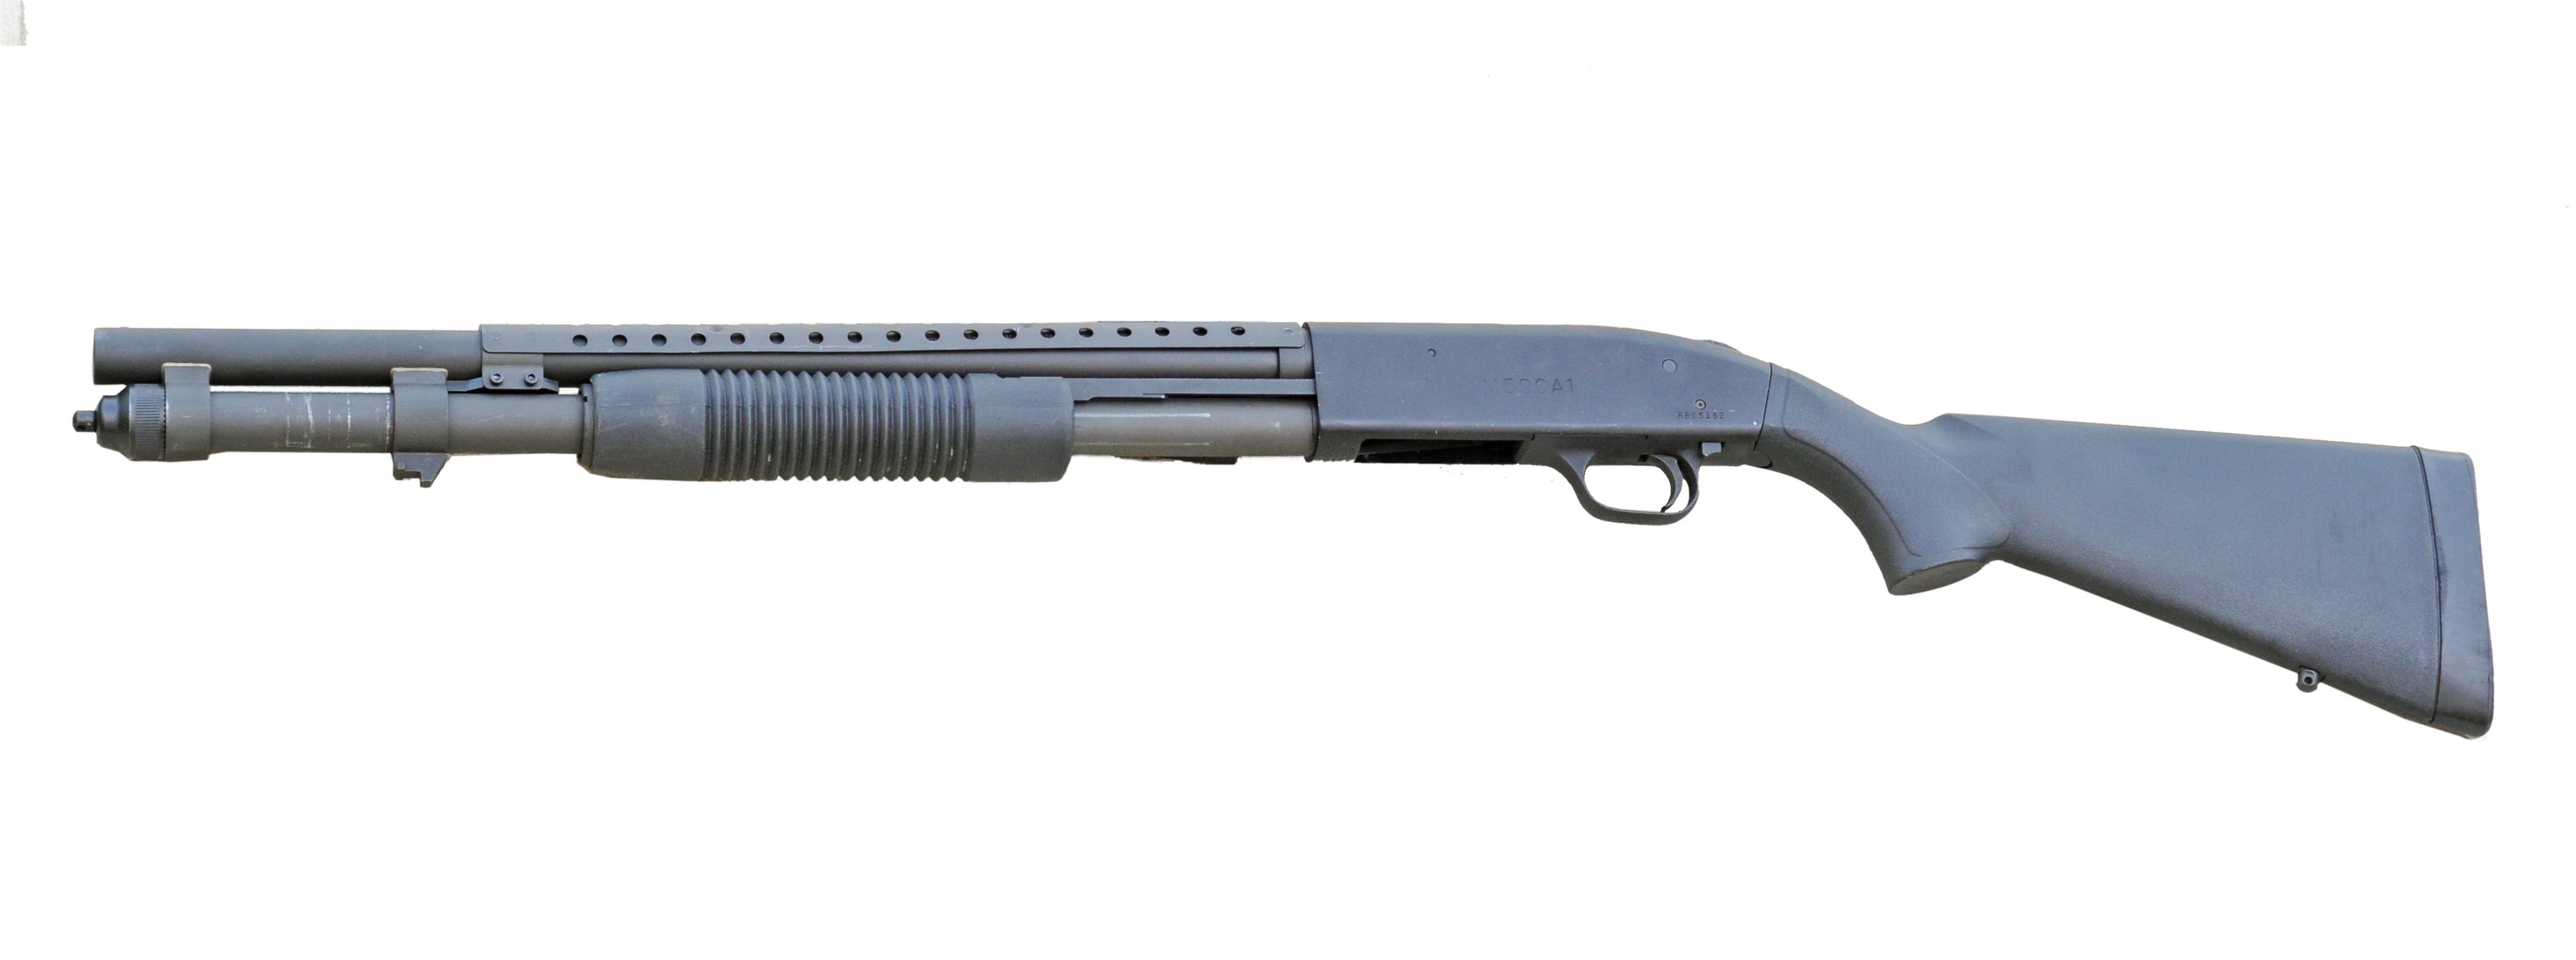 Image result for mossberg 590 pump action shotgun